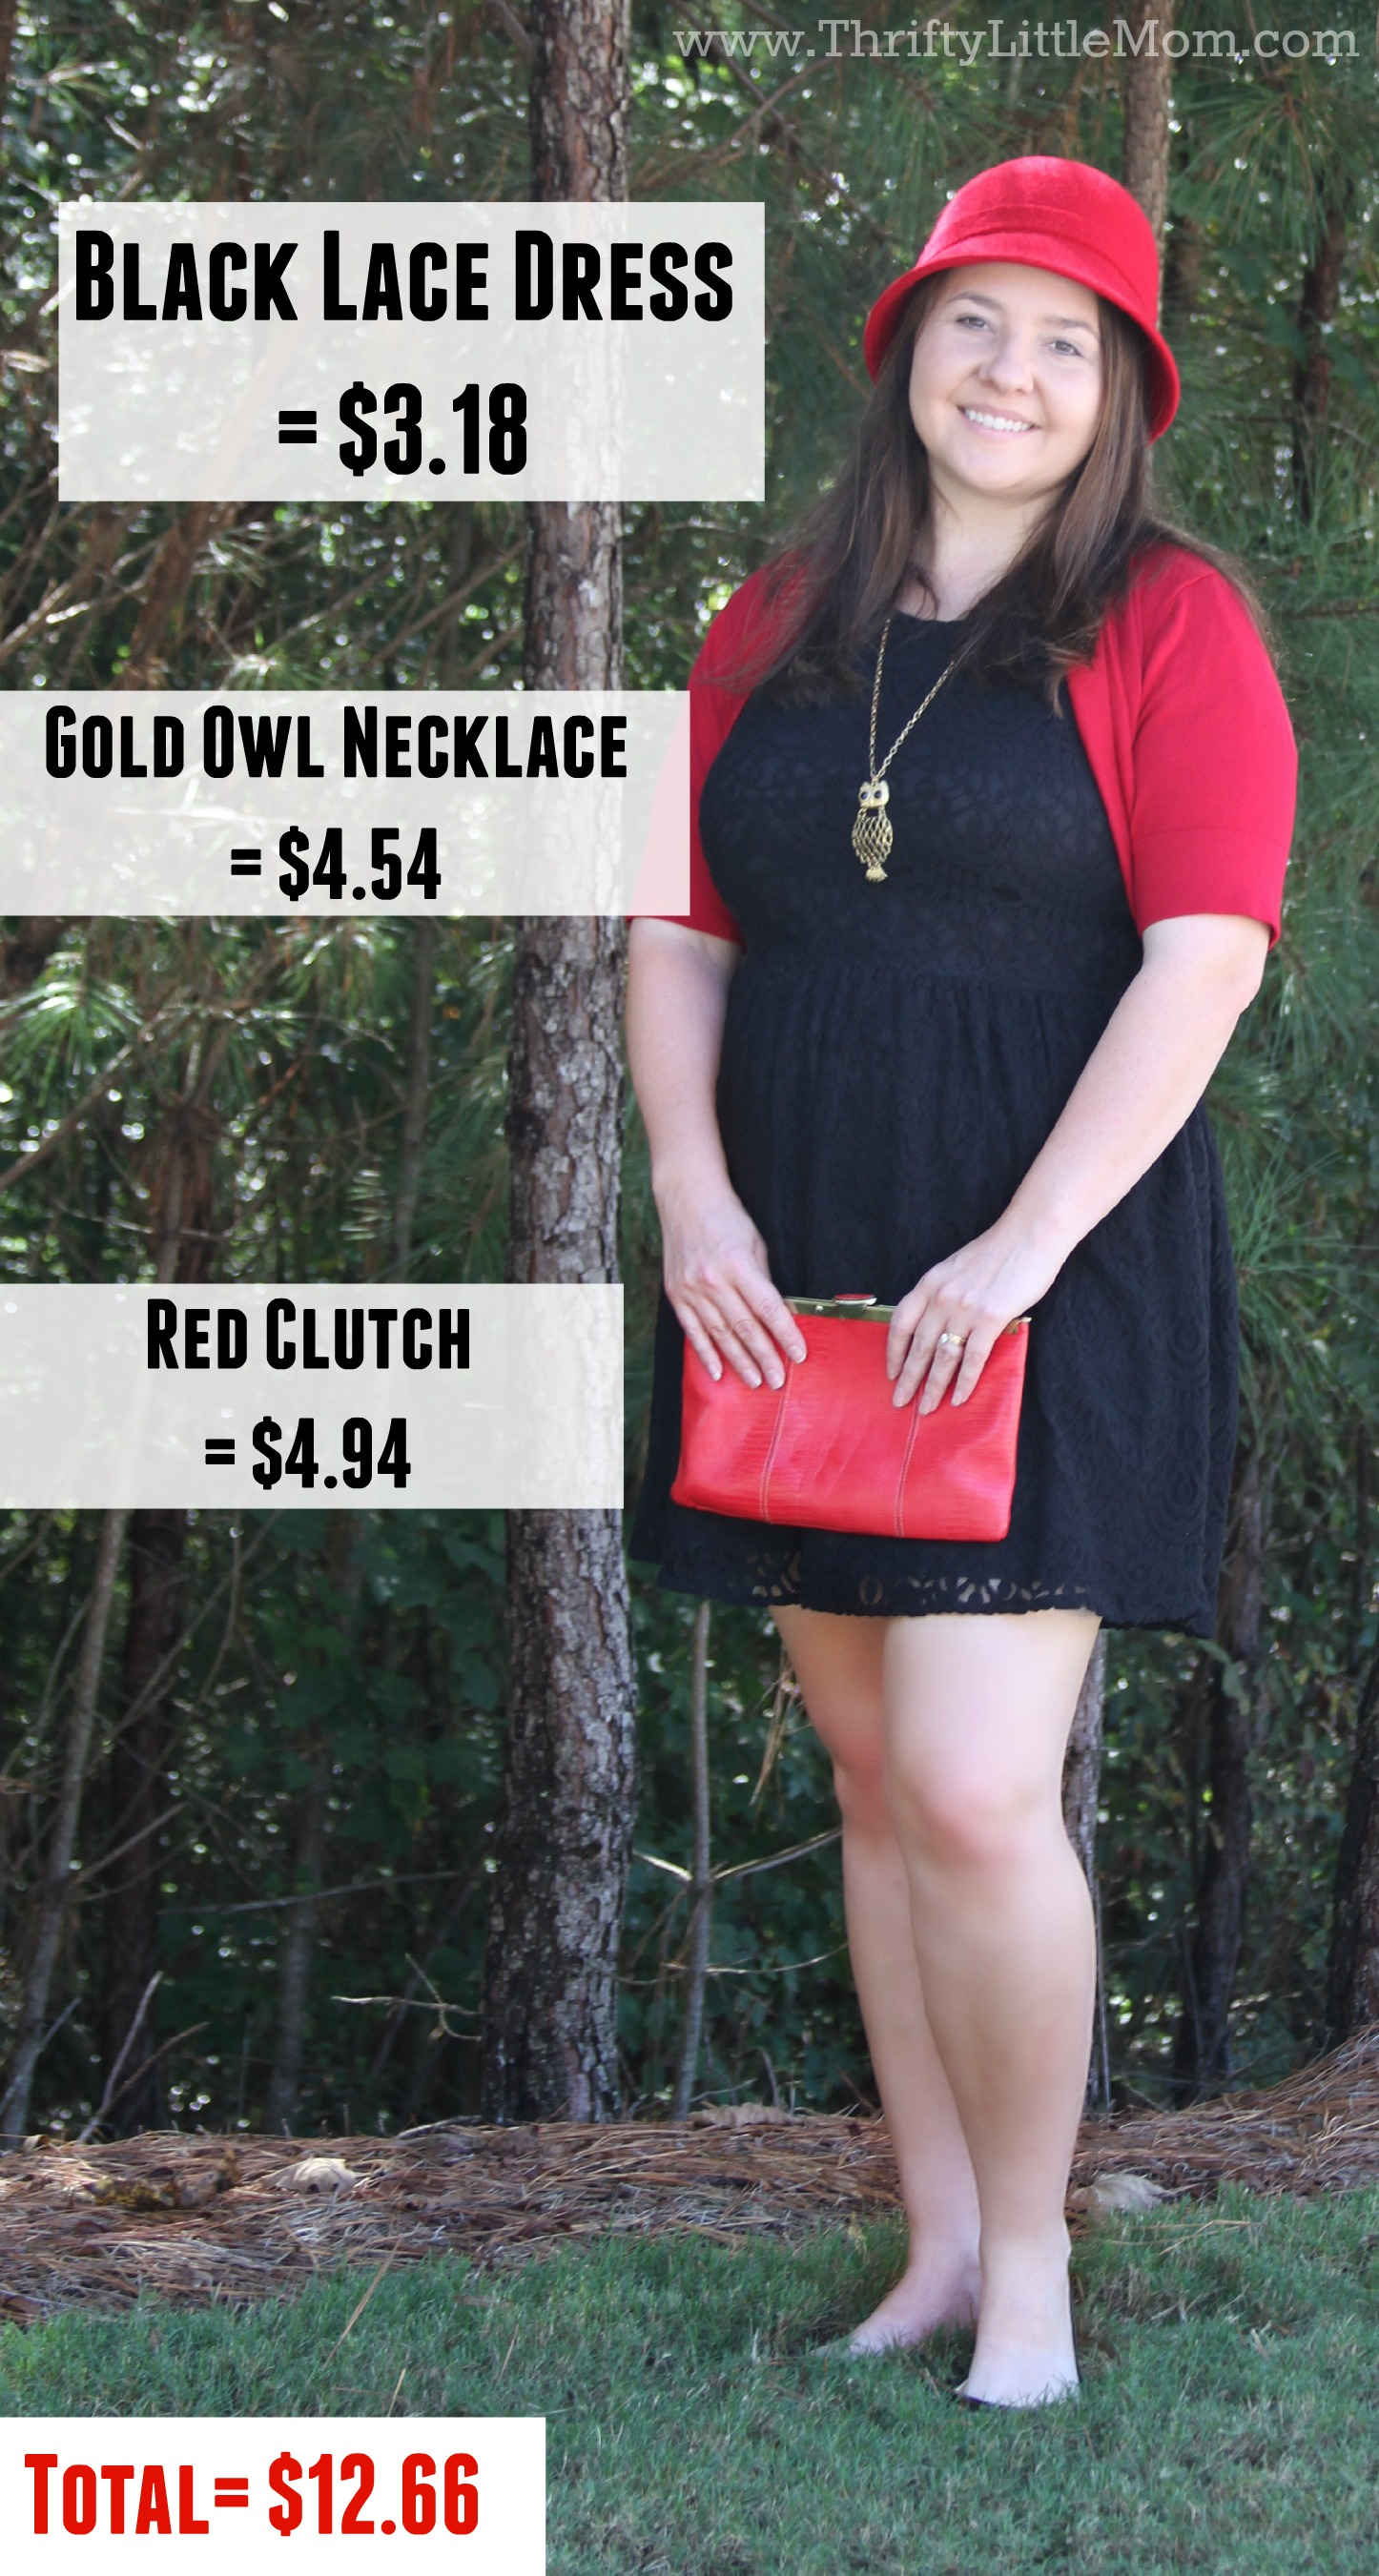 Price Breakdown of Goodwill Outfit 2